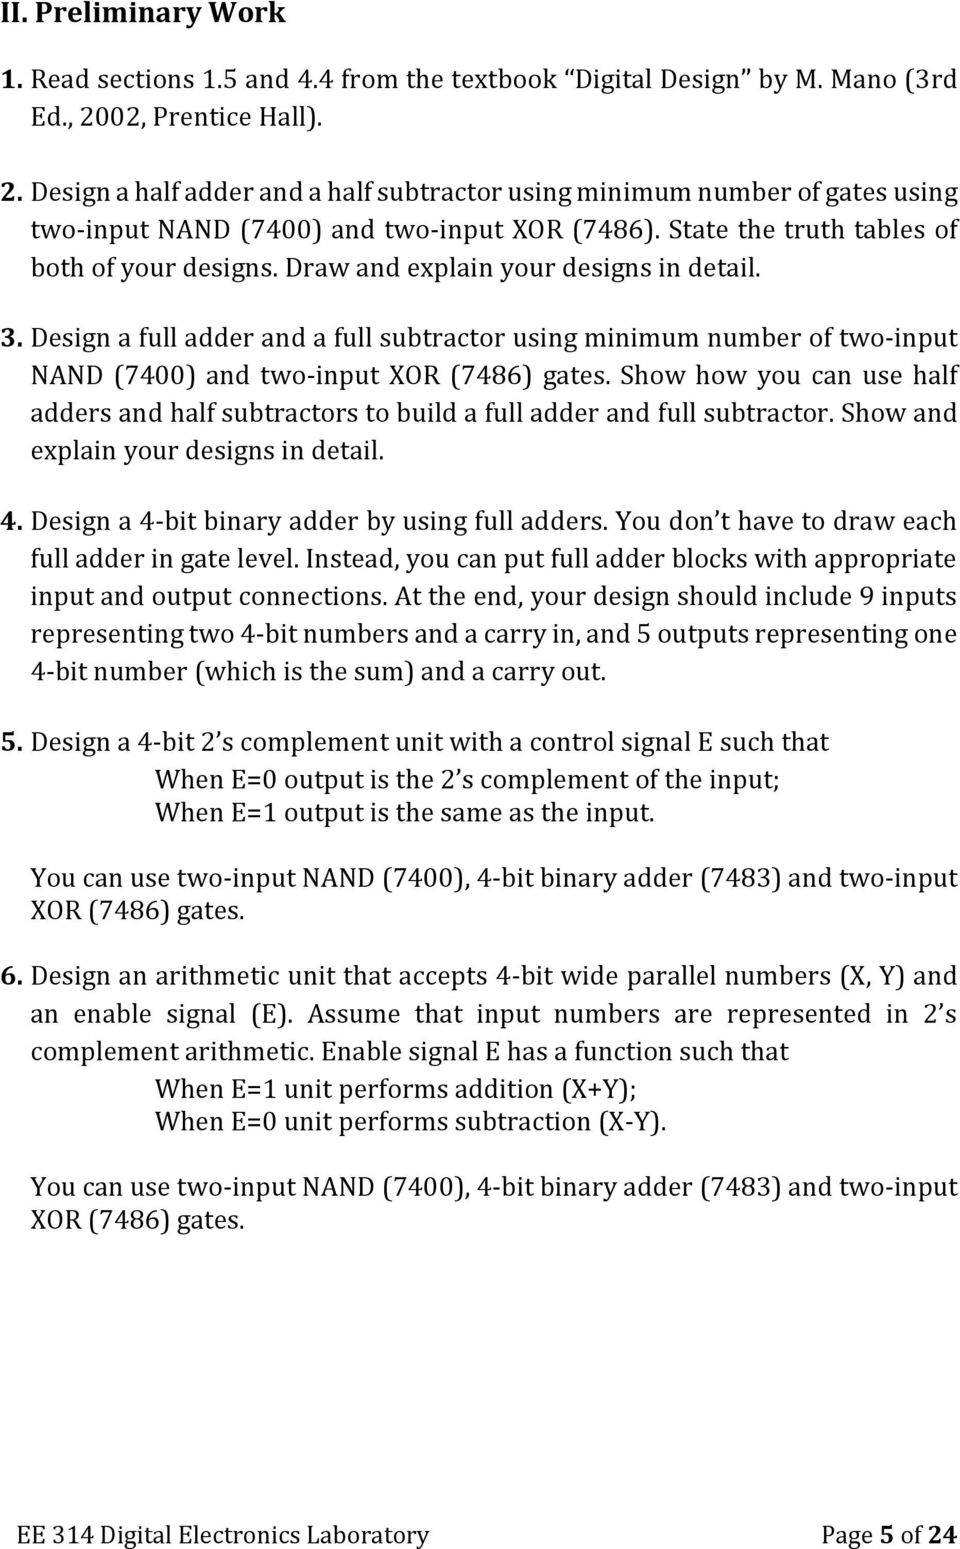 Experiment 4 Parallel Adders Subtractors And Complementors Pdf Bit Binary Full Adder Logic Gate Analog Digital Ic Design Draw Explain Your Designs In Detail 3 A